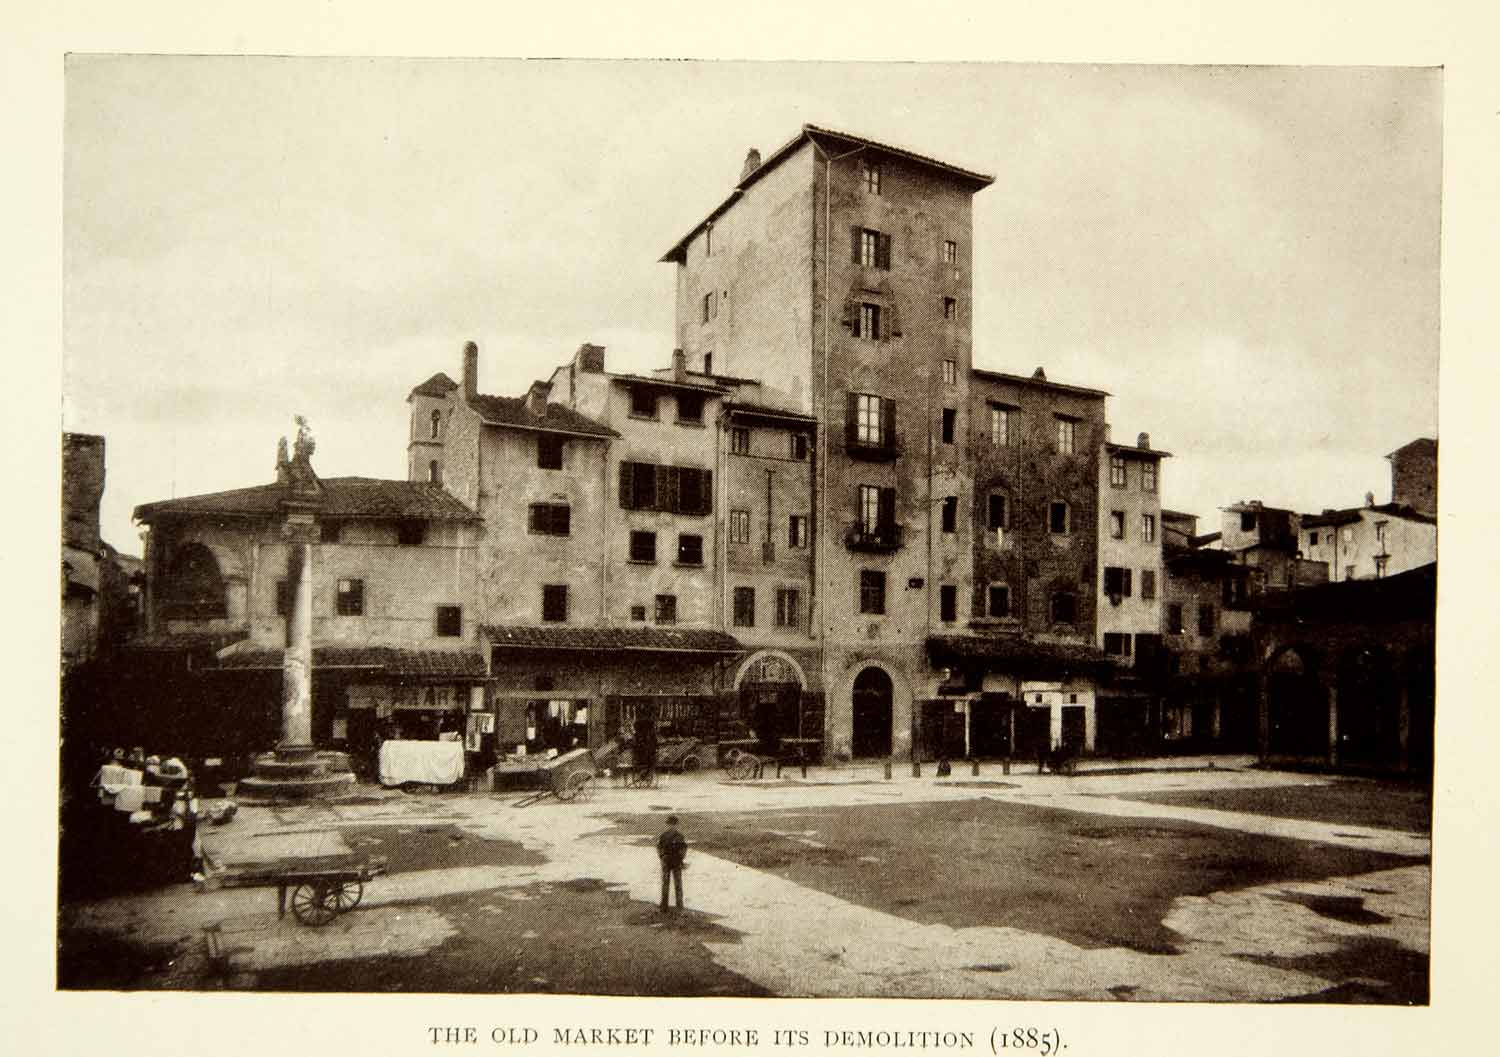 1909 Print Florence Firenze Italy Old Market City Marketplace Buildings XEIA8